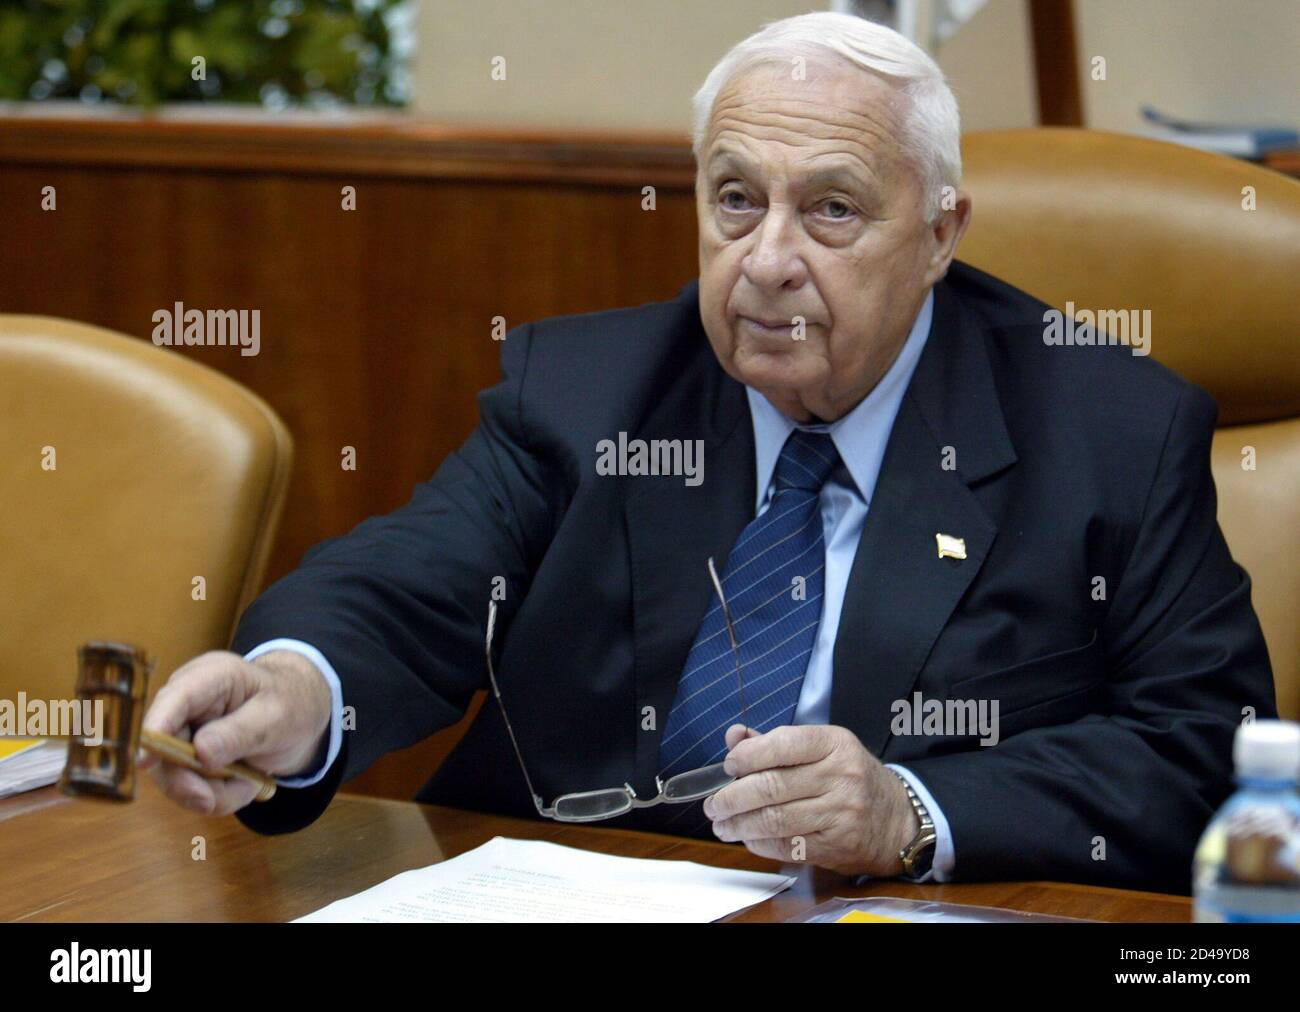 Israeli Prime Minister Ariel Sharon attends the weekly cabinet meeting in Jerusalem 19 January 2003. Sharon's rightist Likud party is ahead in opinion polls ahead of a general election nine days away. REUTERS/Menahem Kahana/Pool  MJO/FMS Stock Photo